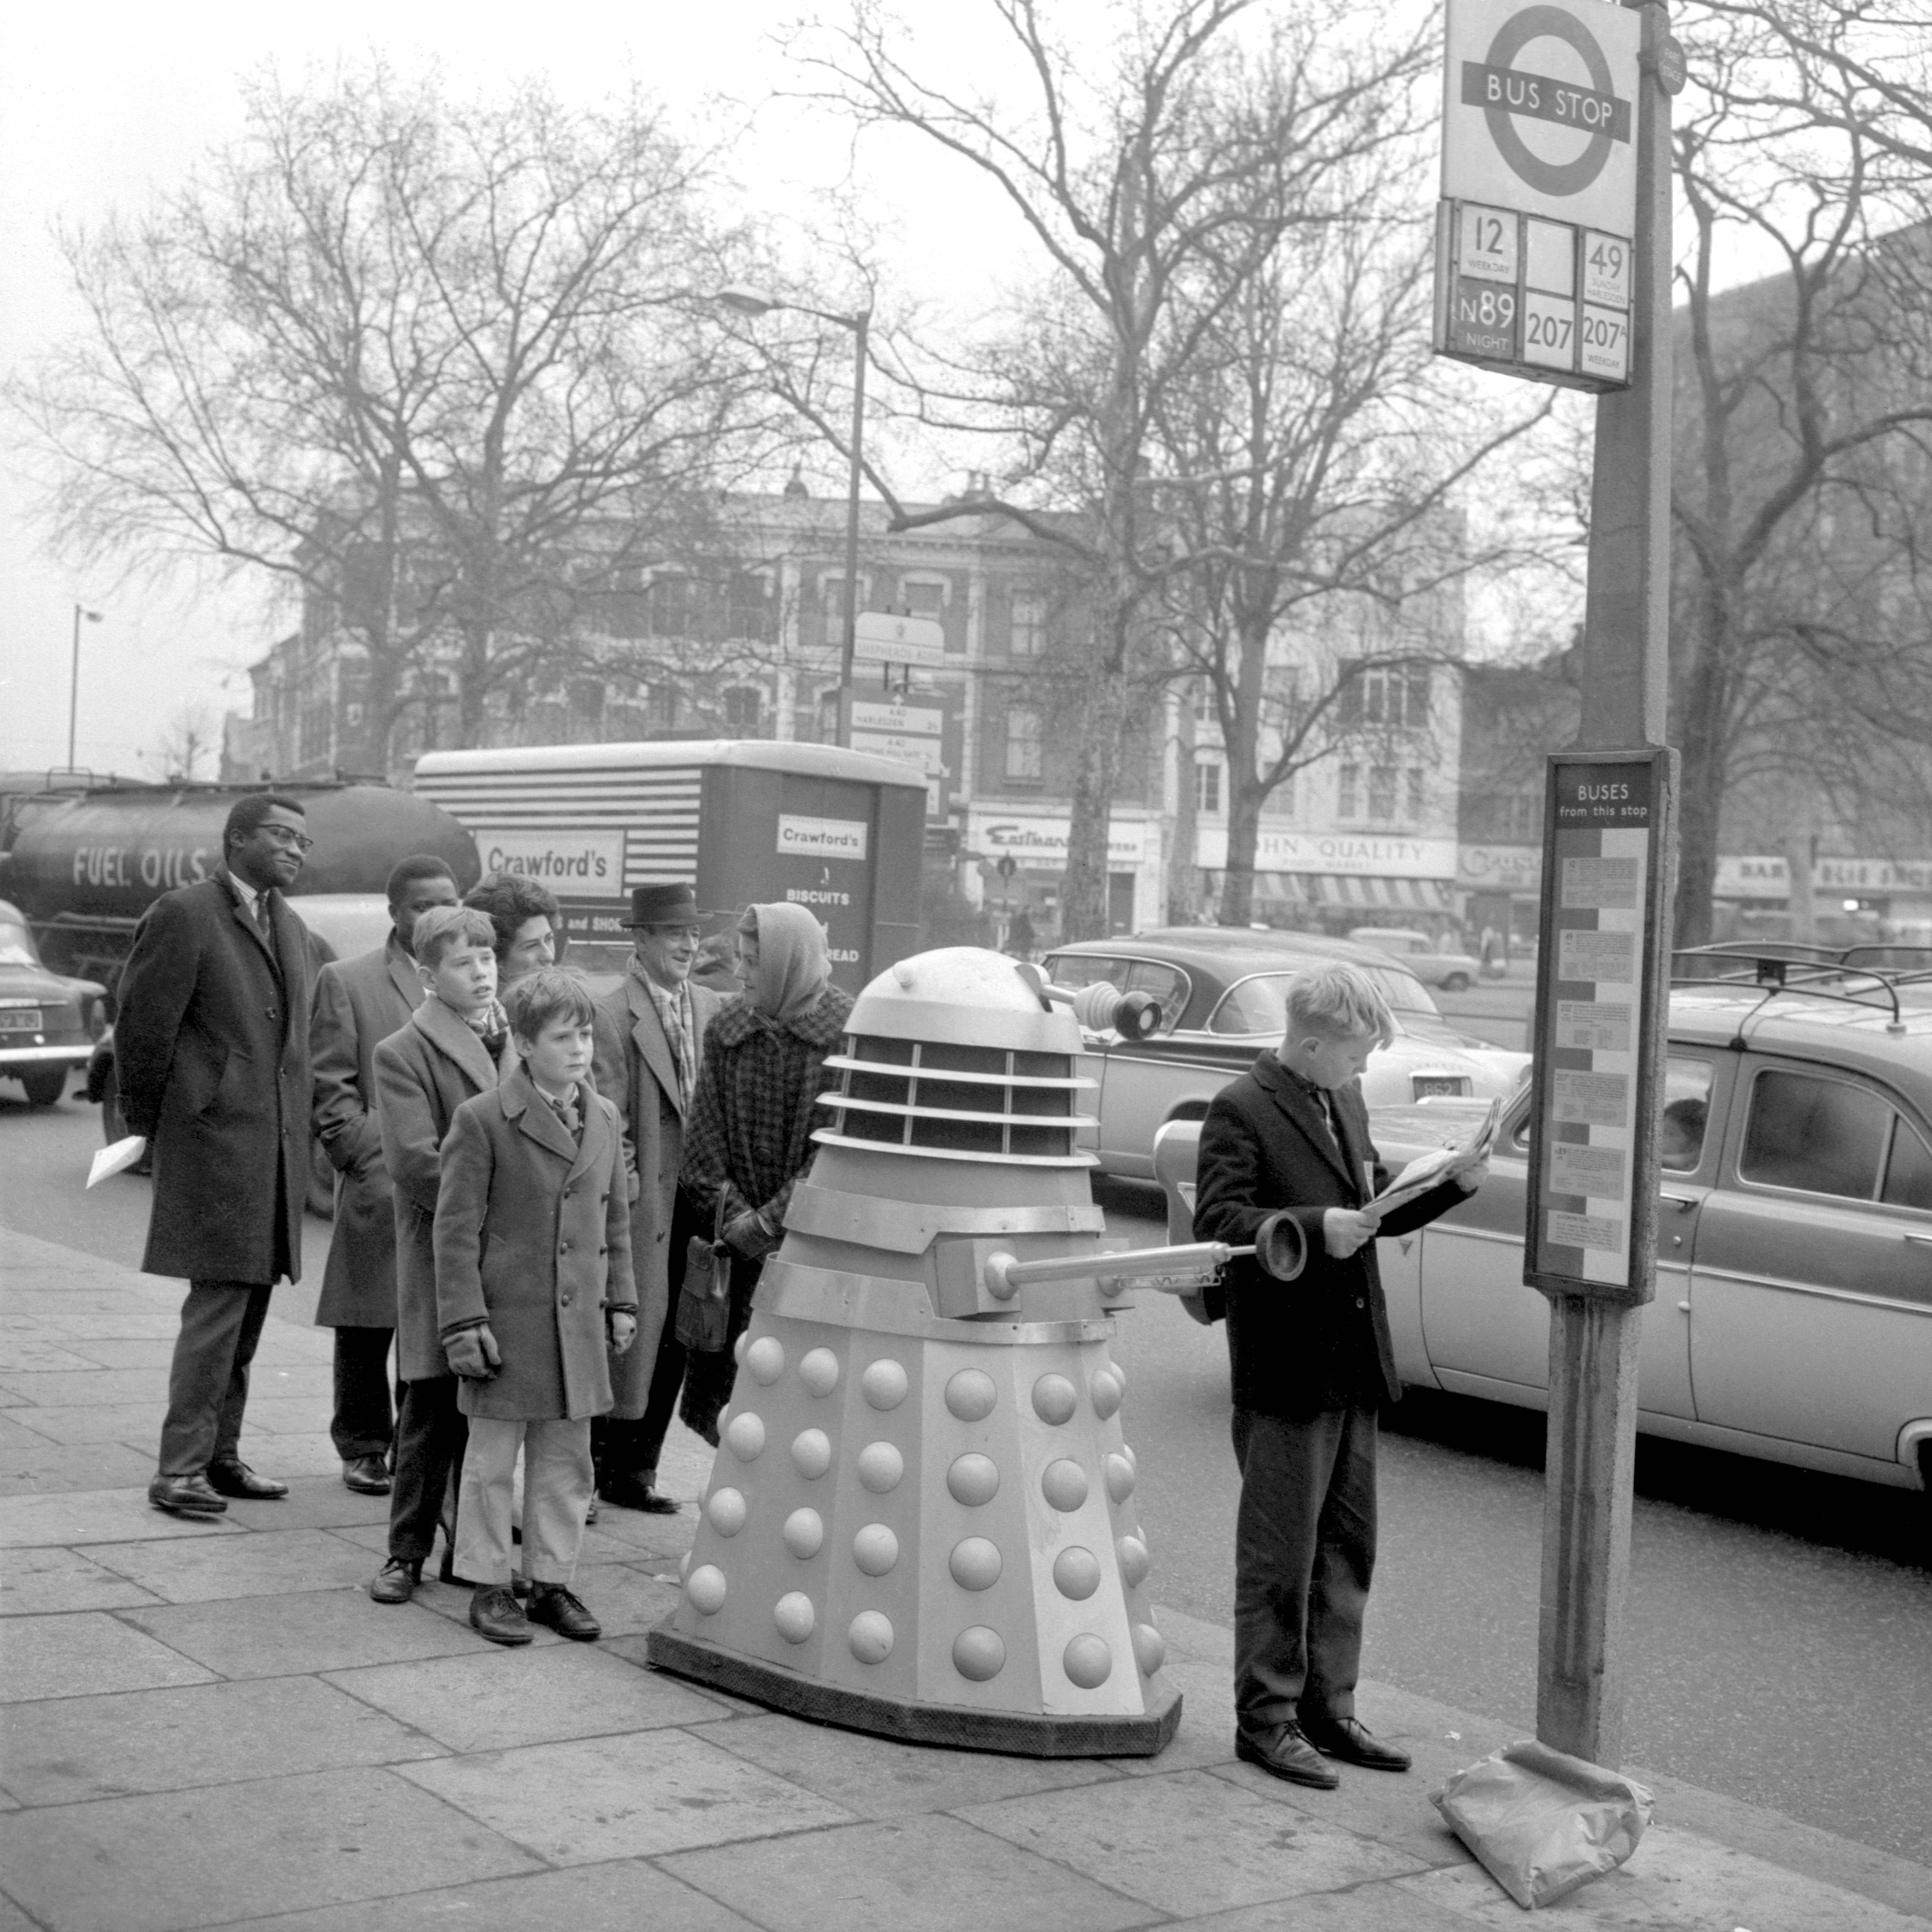 Meeting Dr Who S Daleks In The 1960s 19 Photos Flashbak